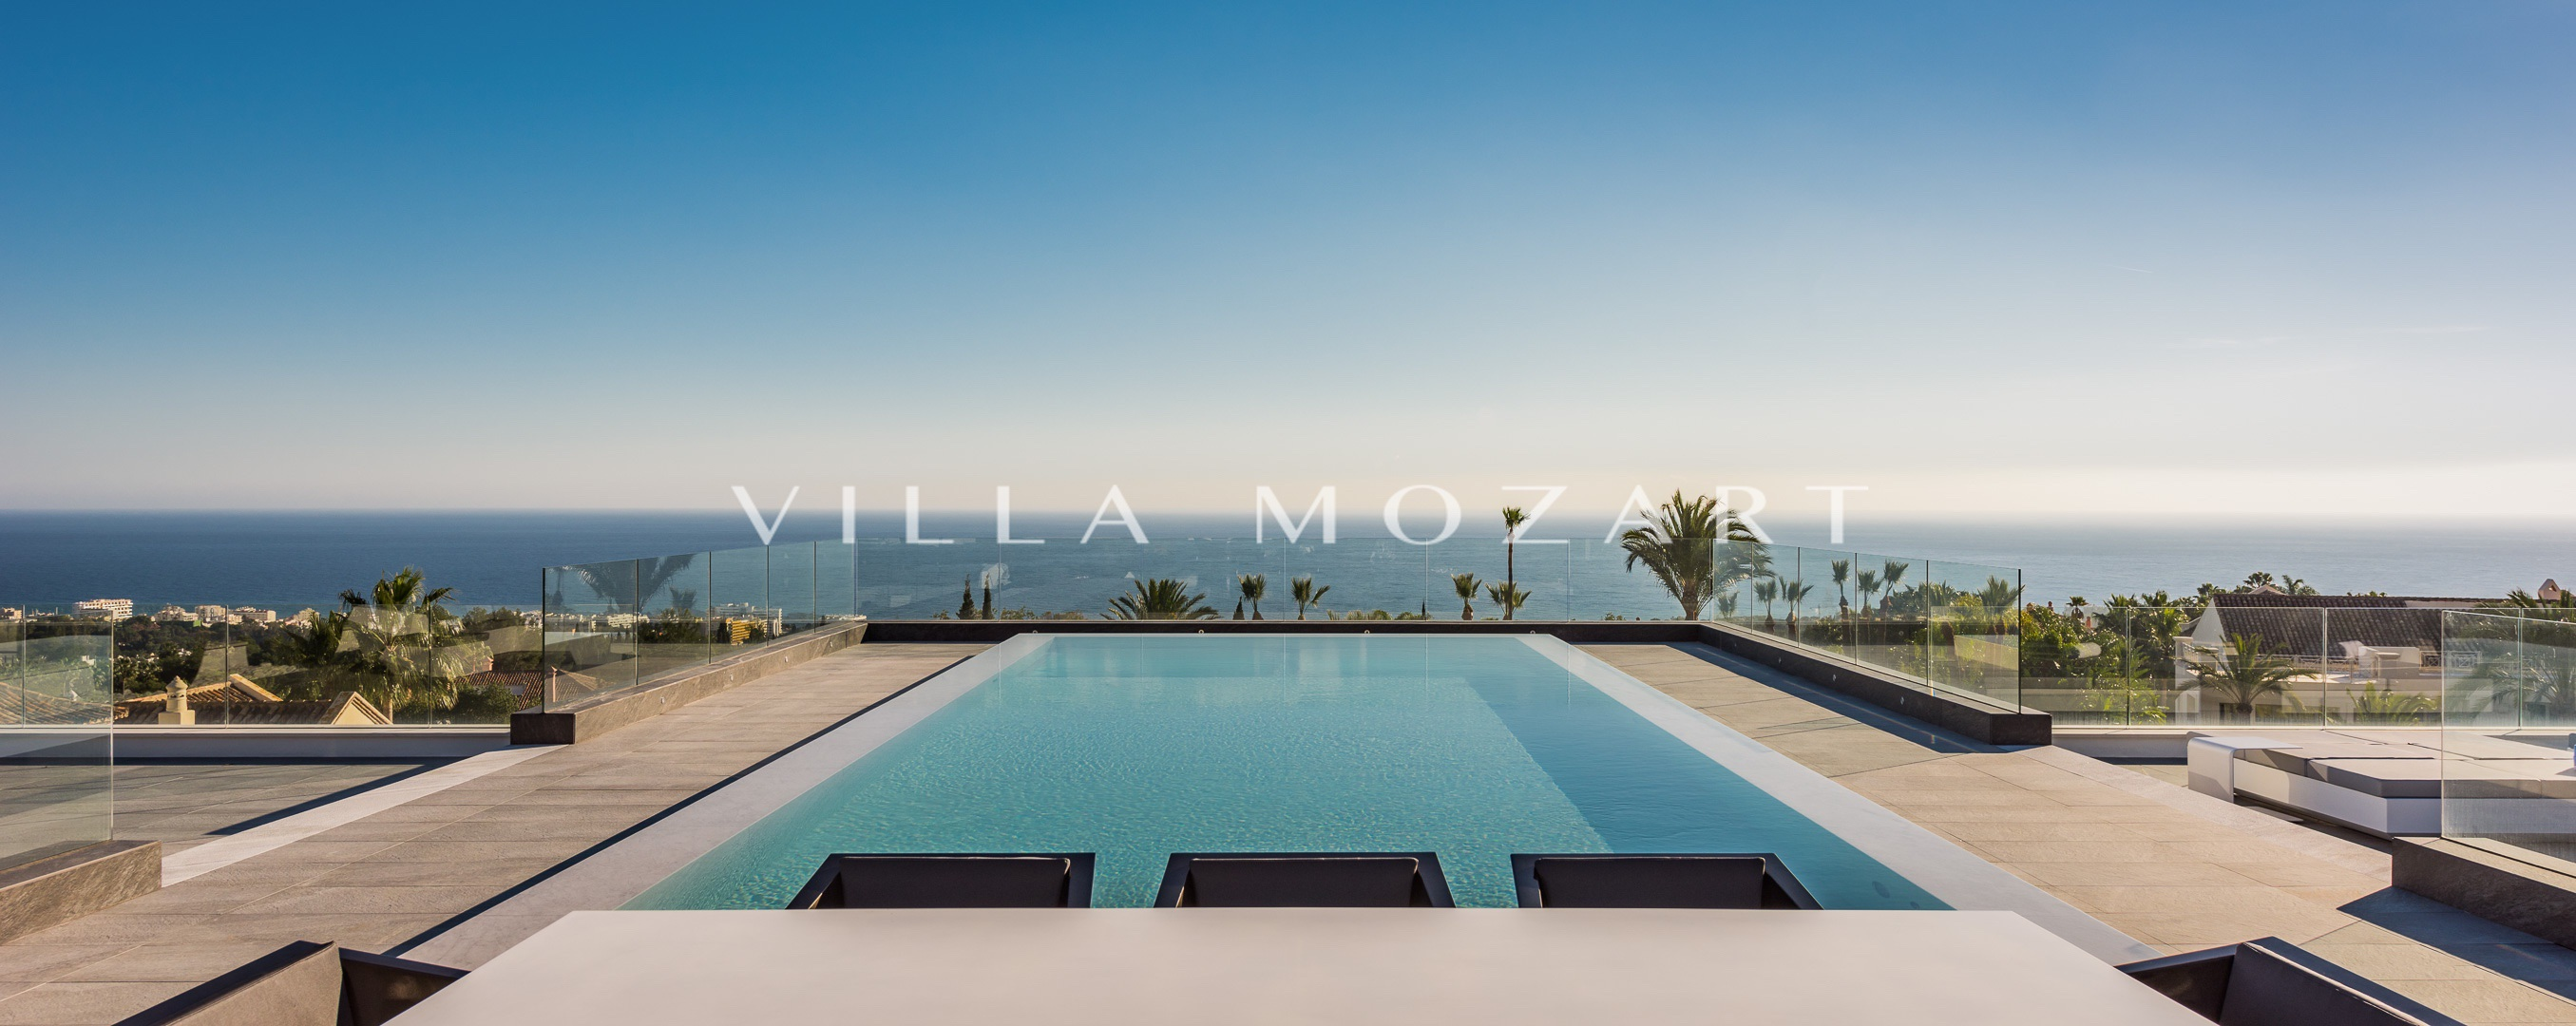 Welcome To Your New Home Villa Mozart In Sierra Blanca